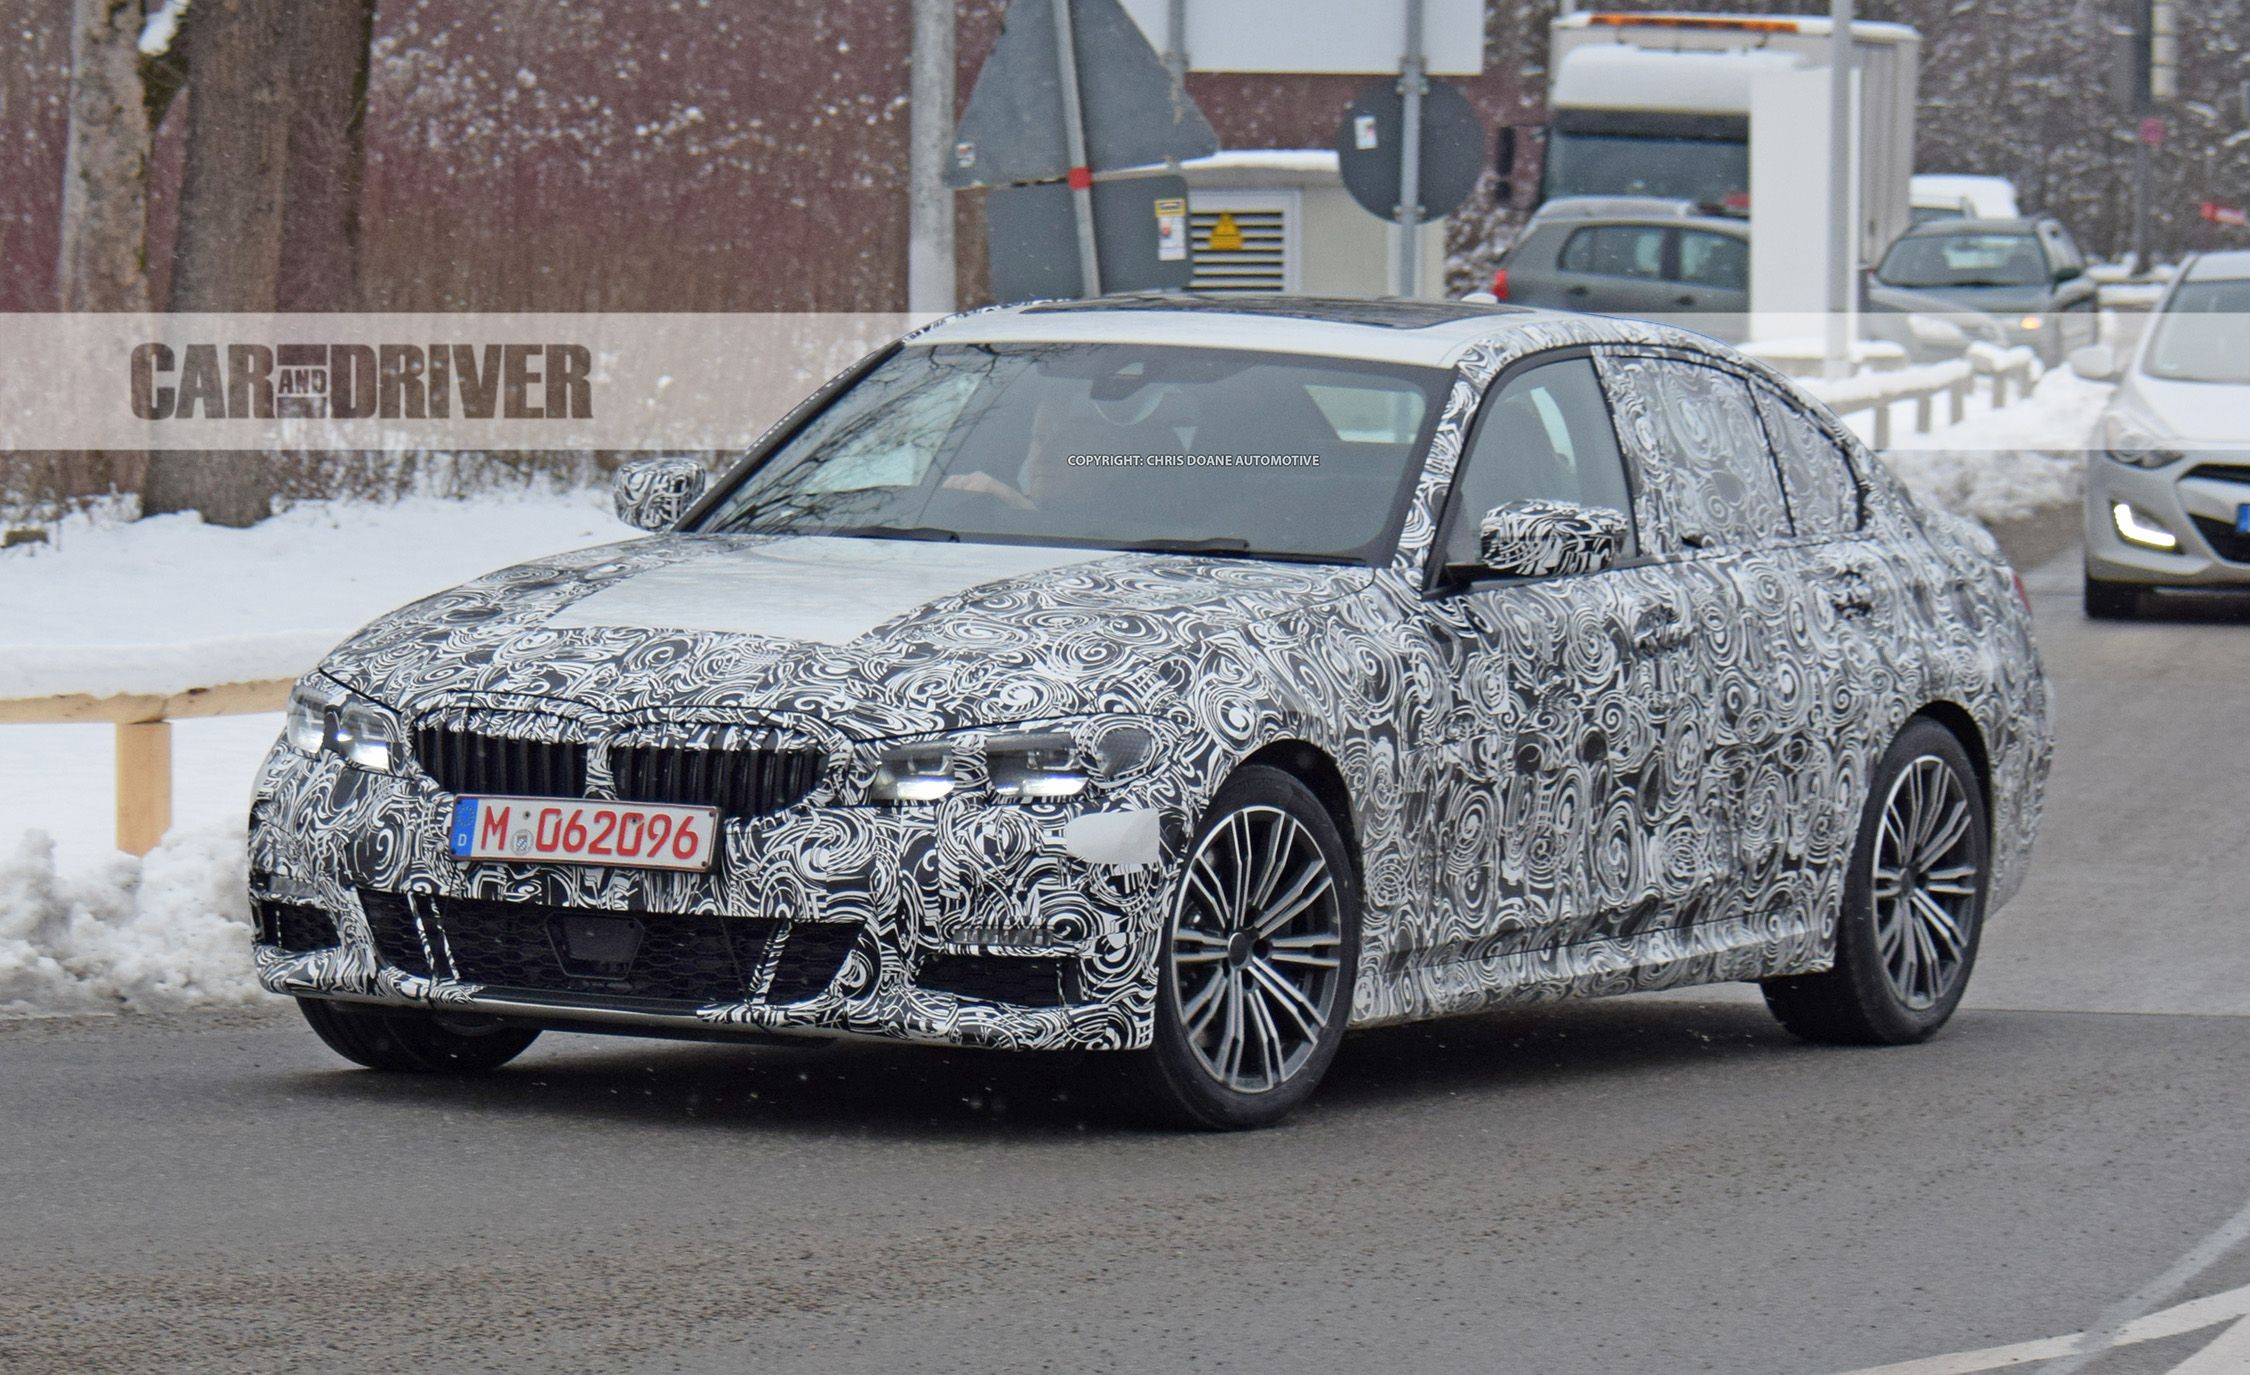 2019 BMW 3-series Sedan Spied, This Time with a Look Inside